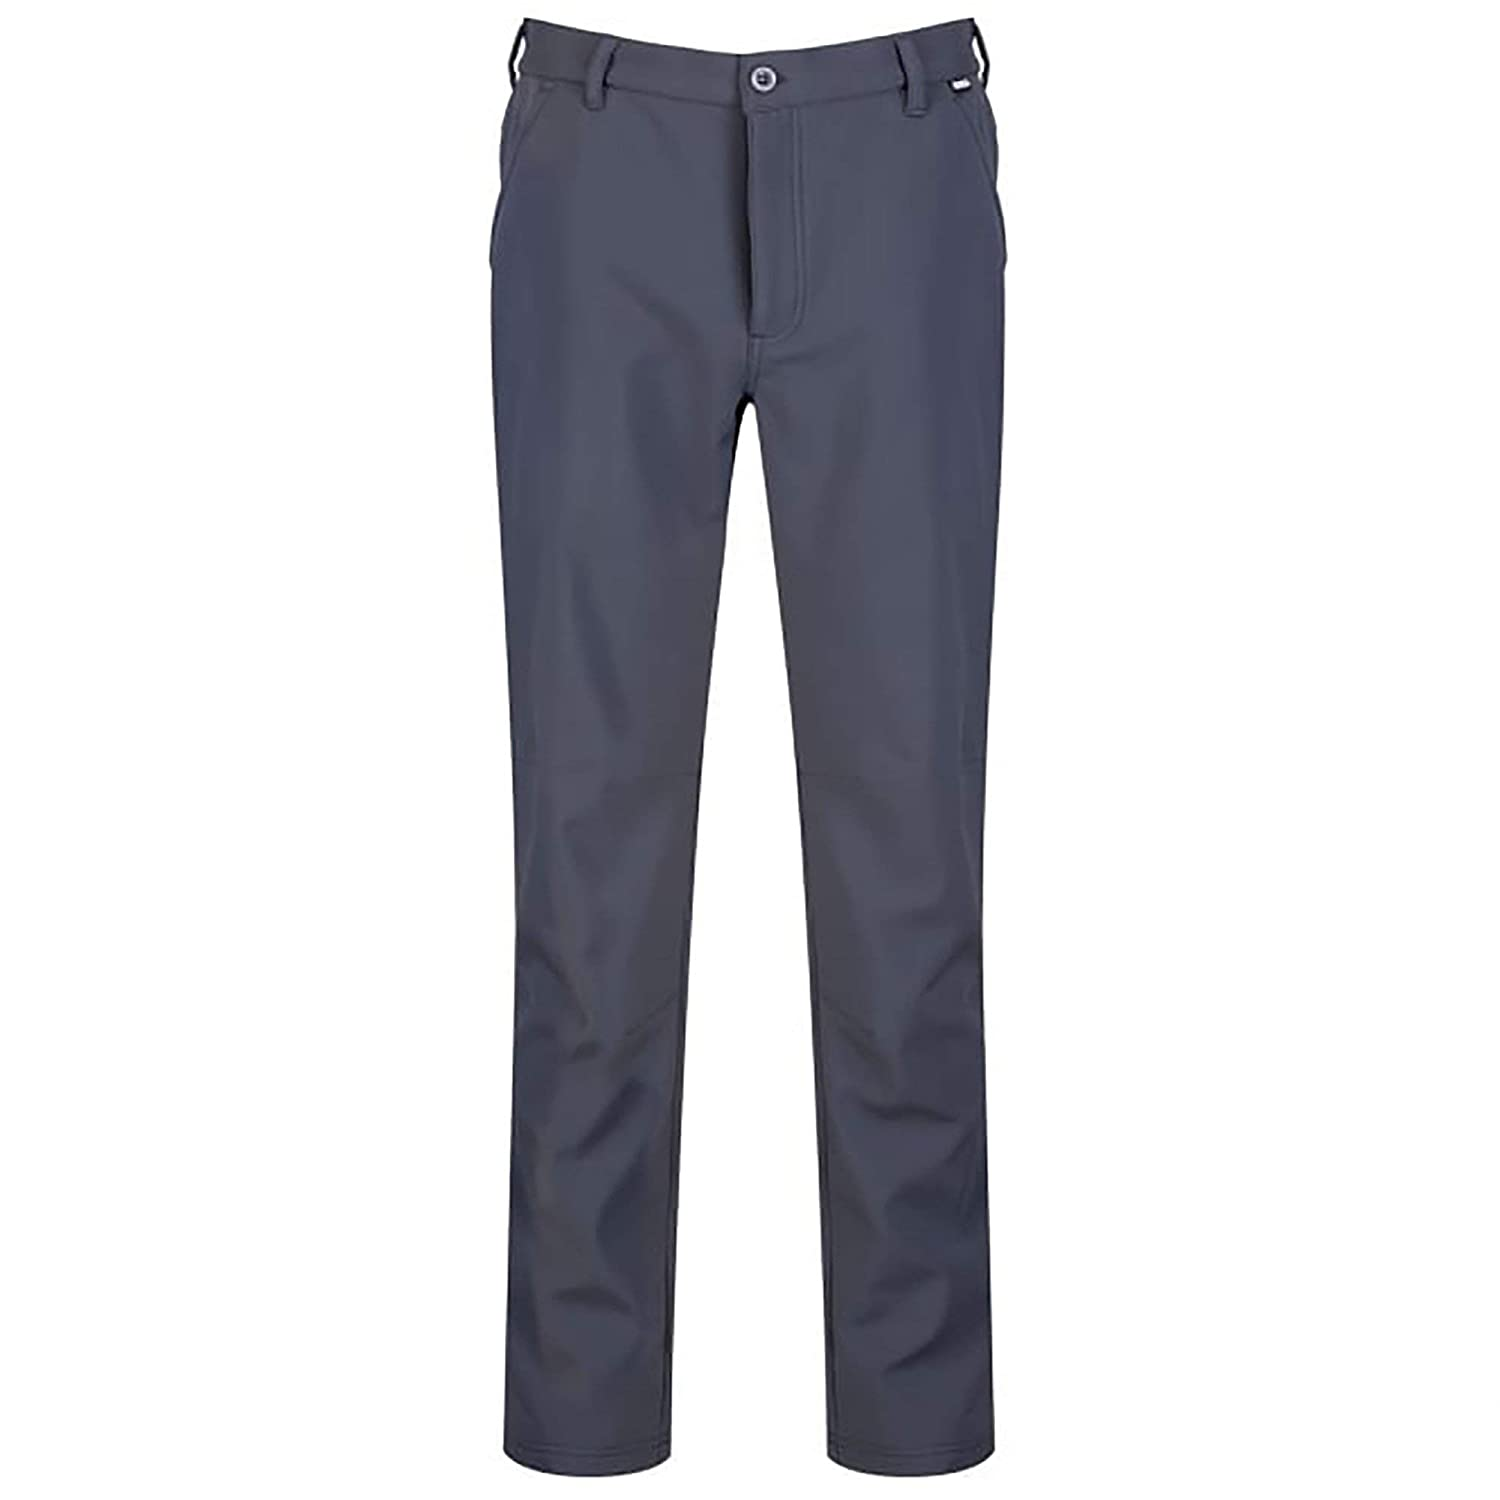 TALLA Size 40-Inch. Regatta Fenton Water Repellent and Wind Resistant Short Leg Pantalones, Hombre